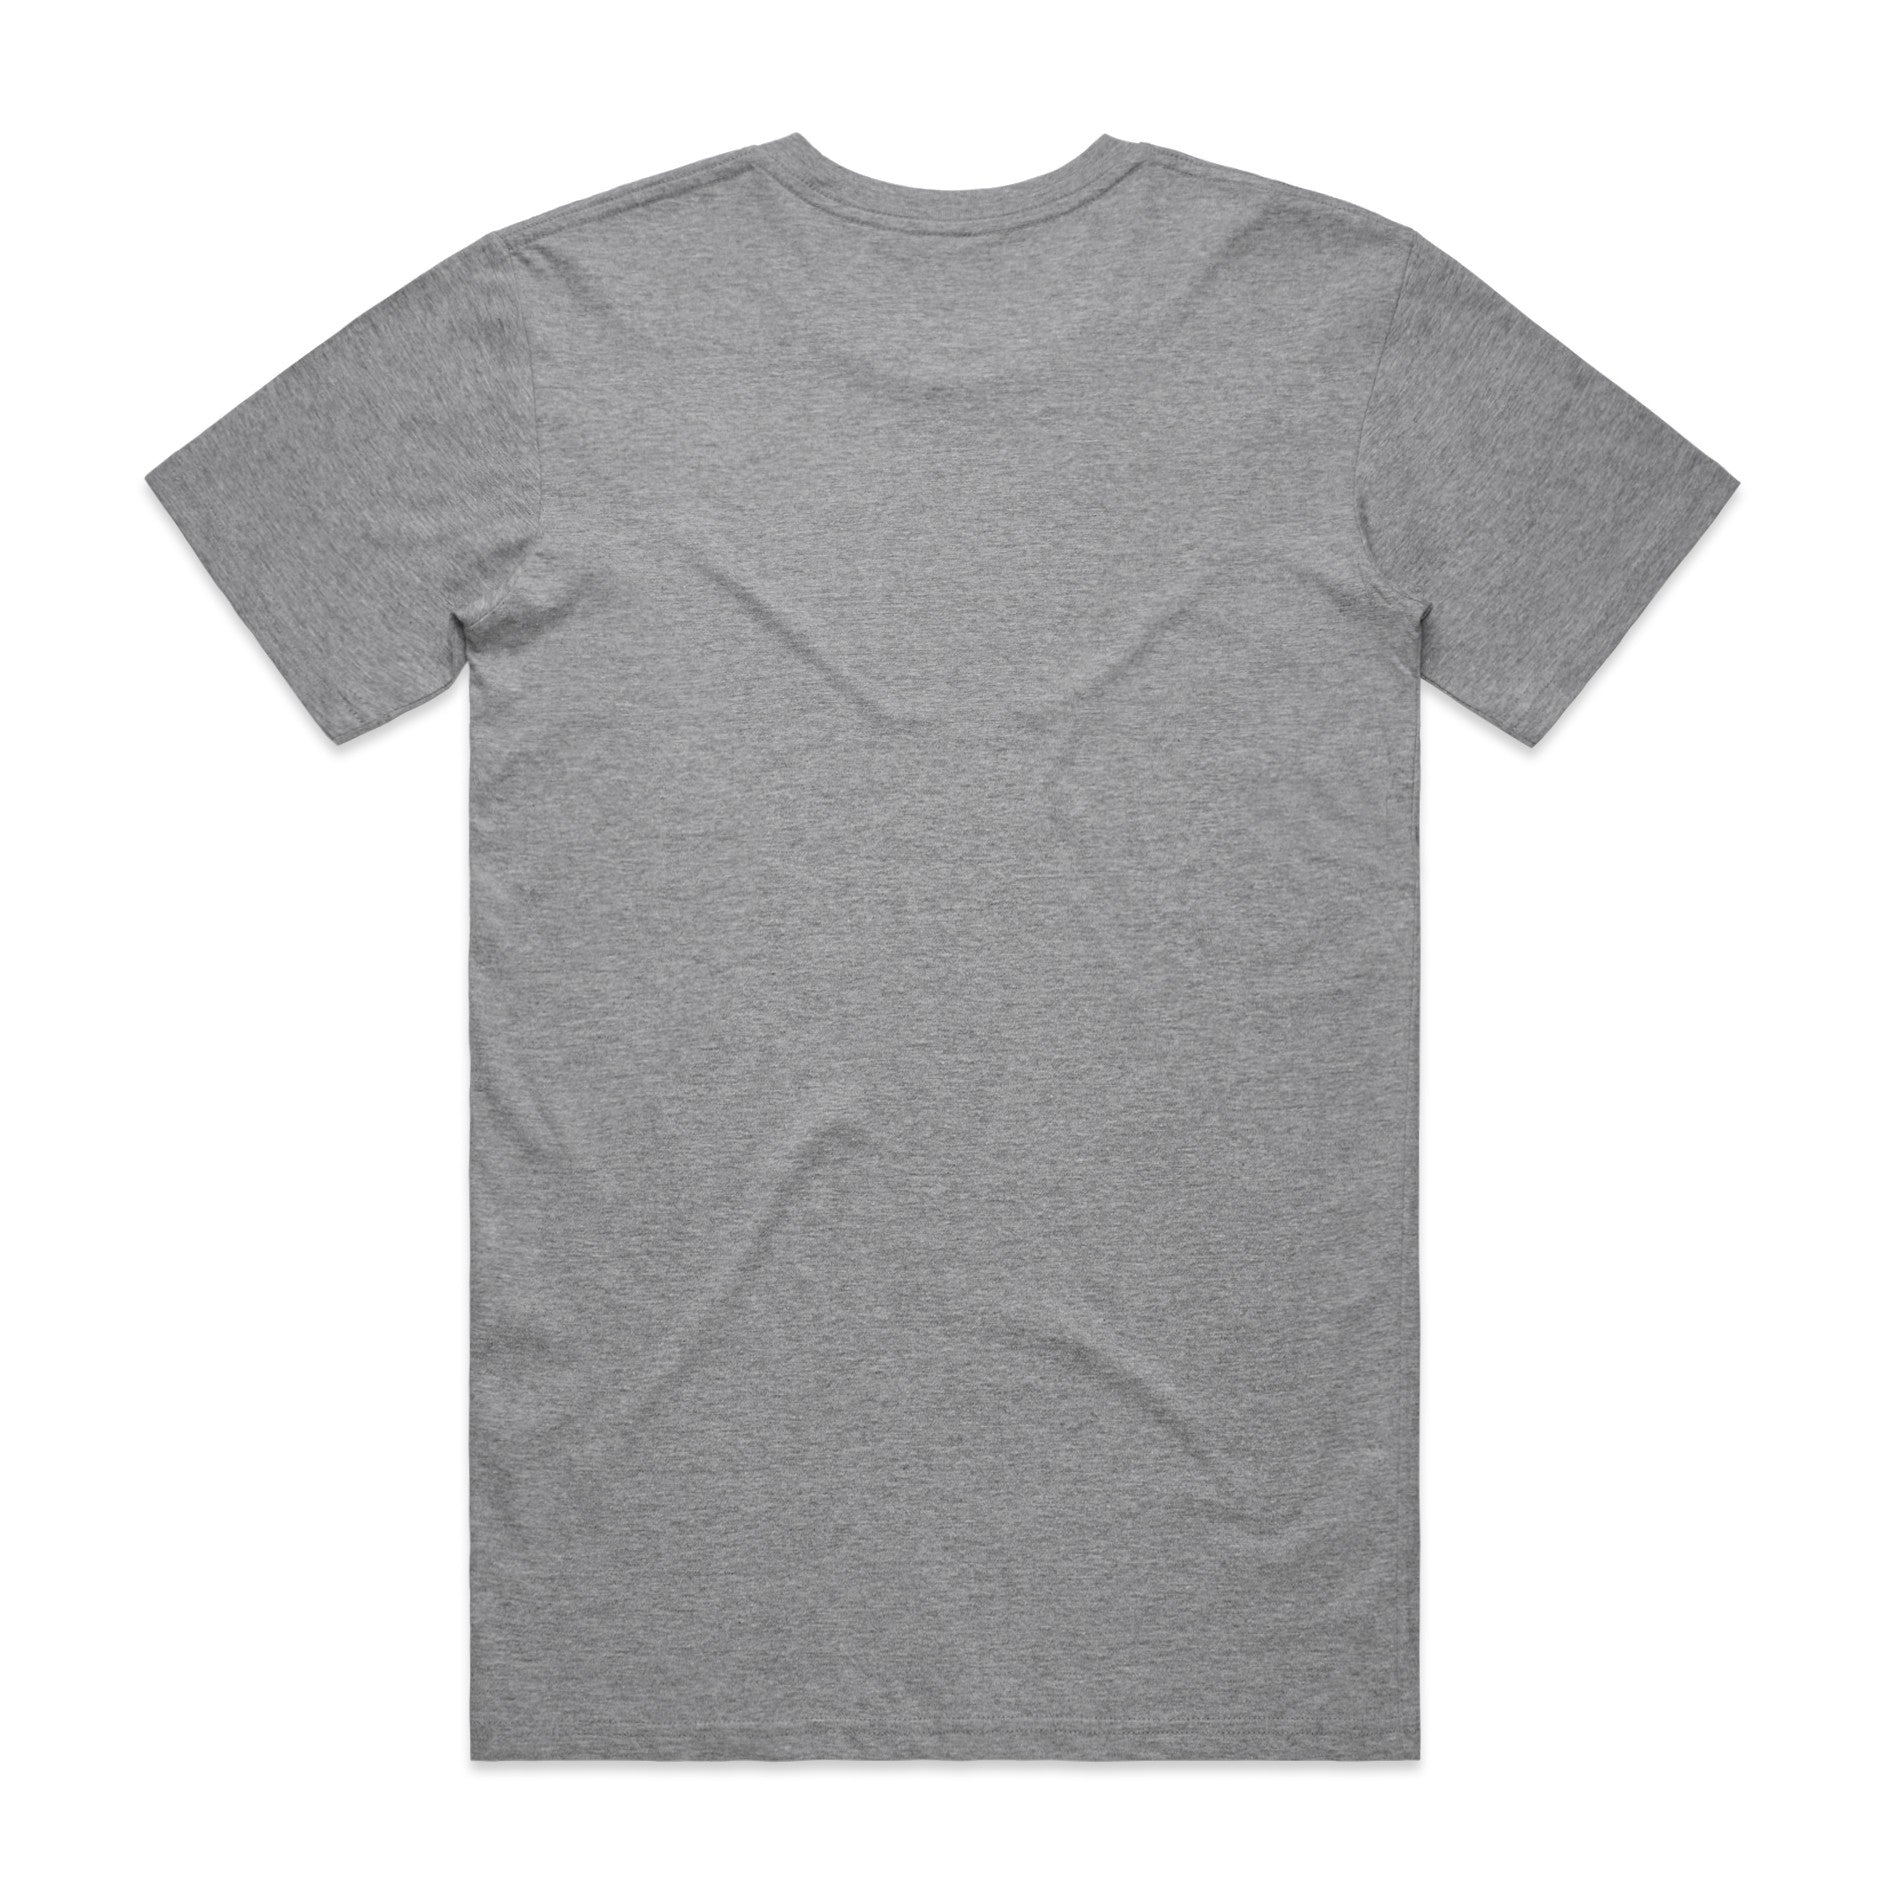 FUNDAMENTAL BADGE T-SHIRT - GREY